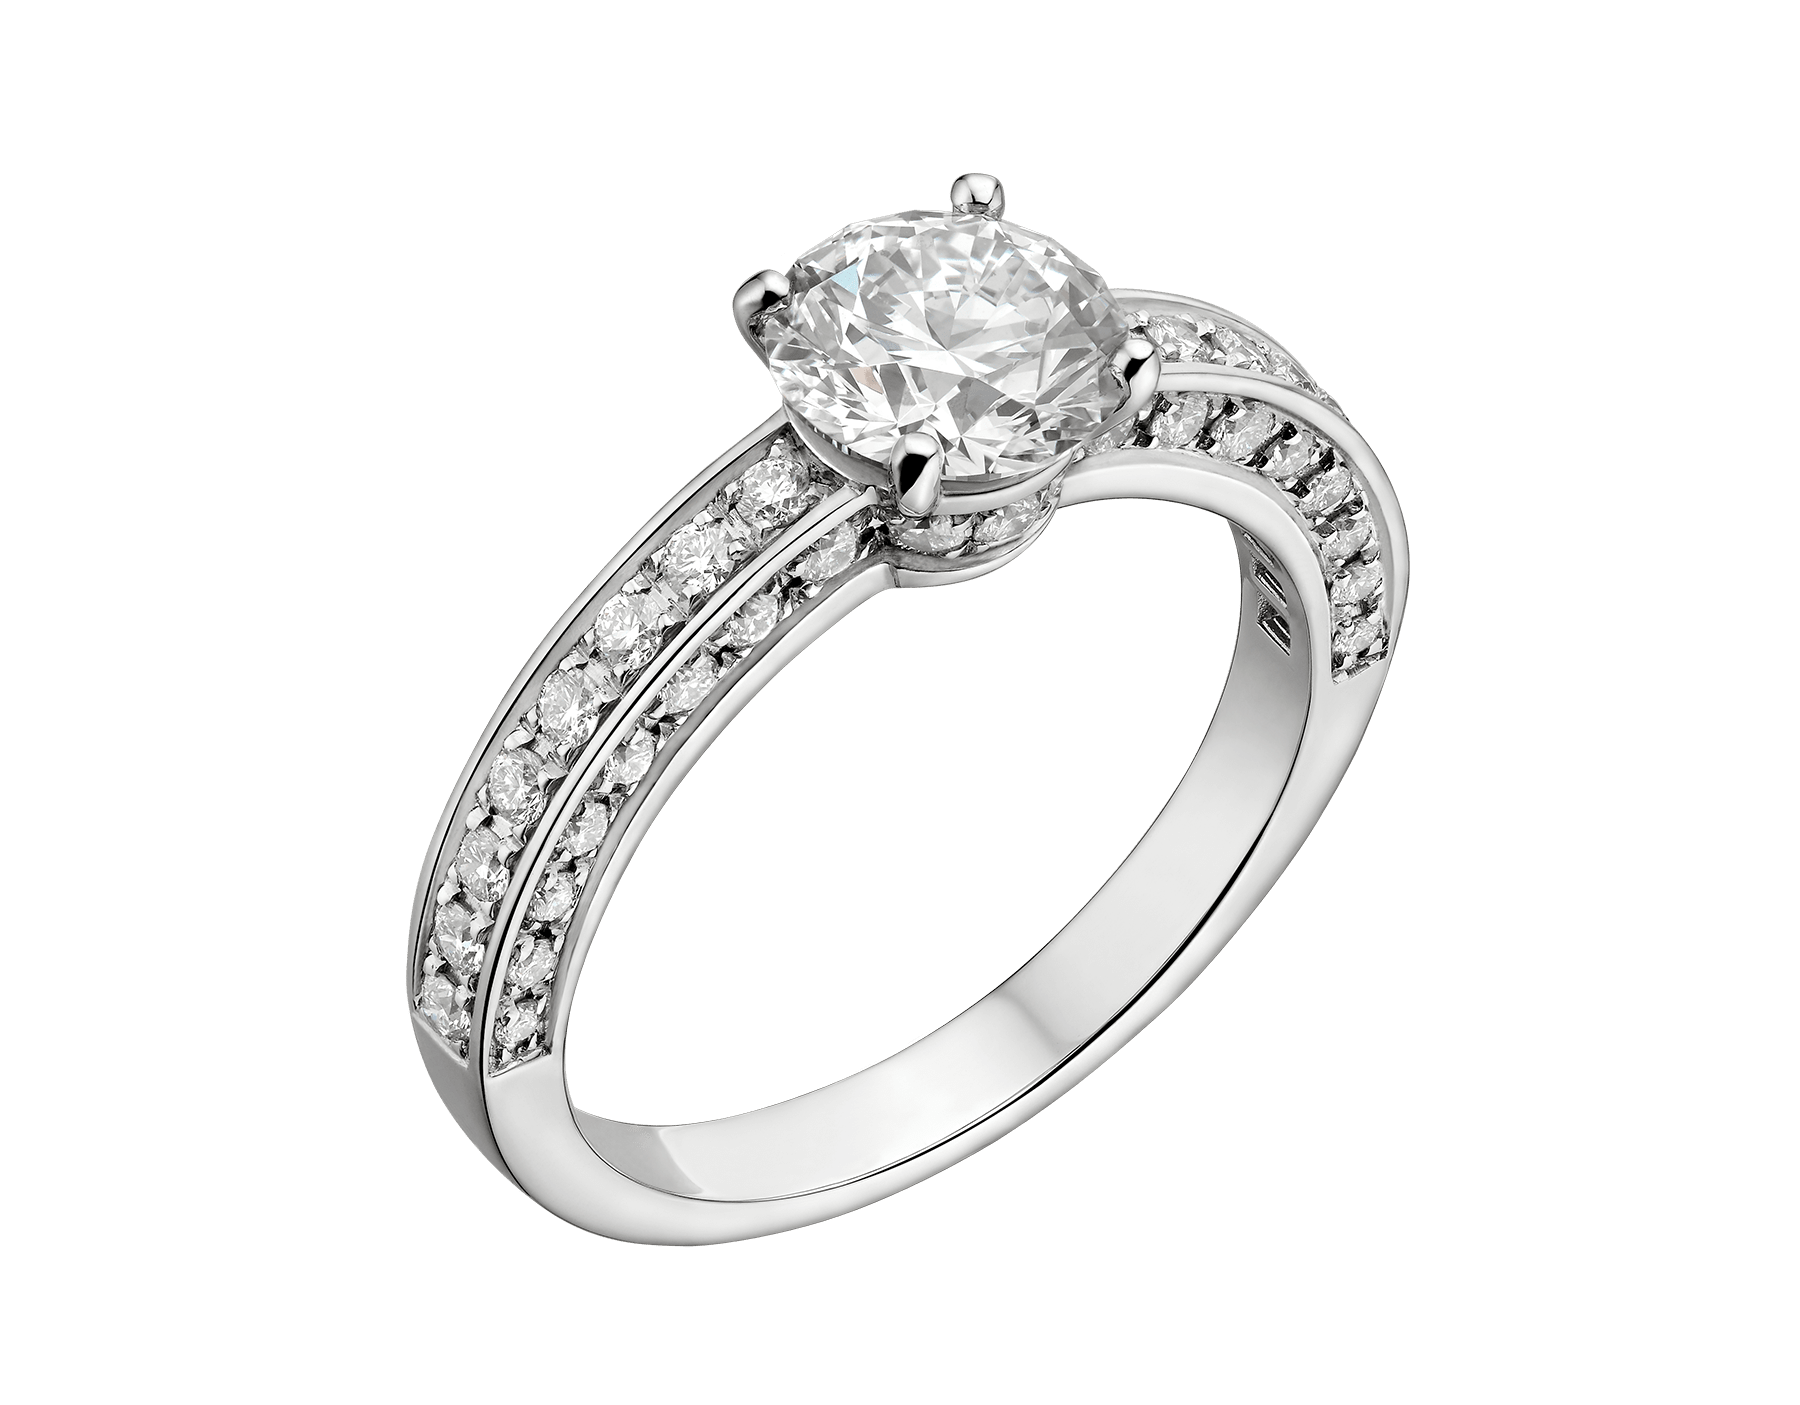 Dedicata a Venezia: 1503 solitaire ring in platinum with a round brilliant-cut diamond and pavé diamonds. Available from 0.30 ct. Named after the year in which the first engagement ring was offered in Venice. 343611 image 1